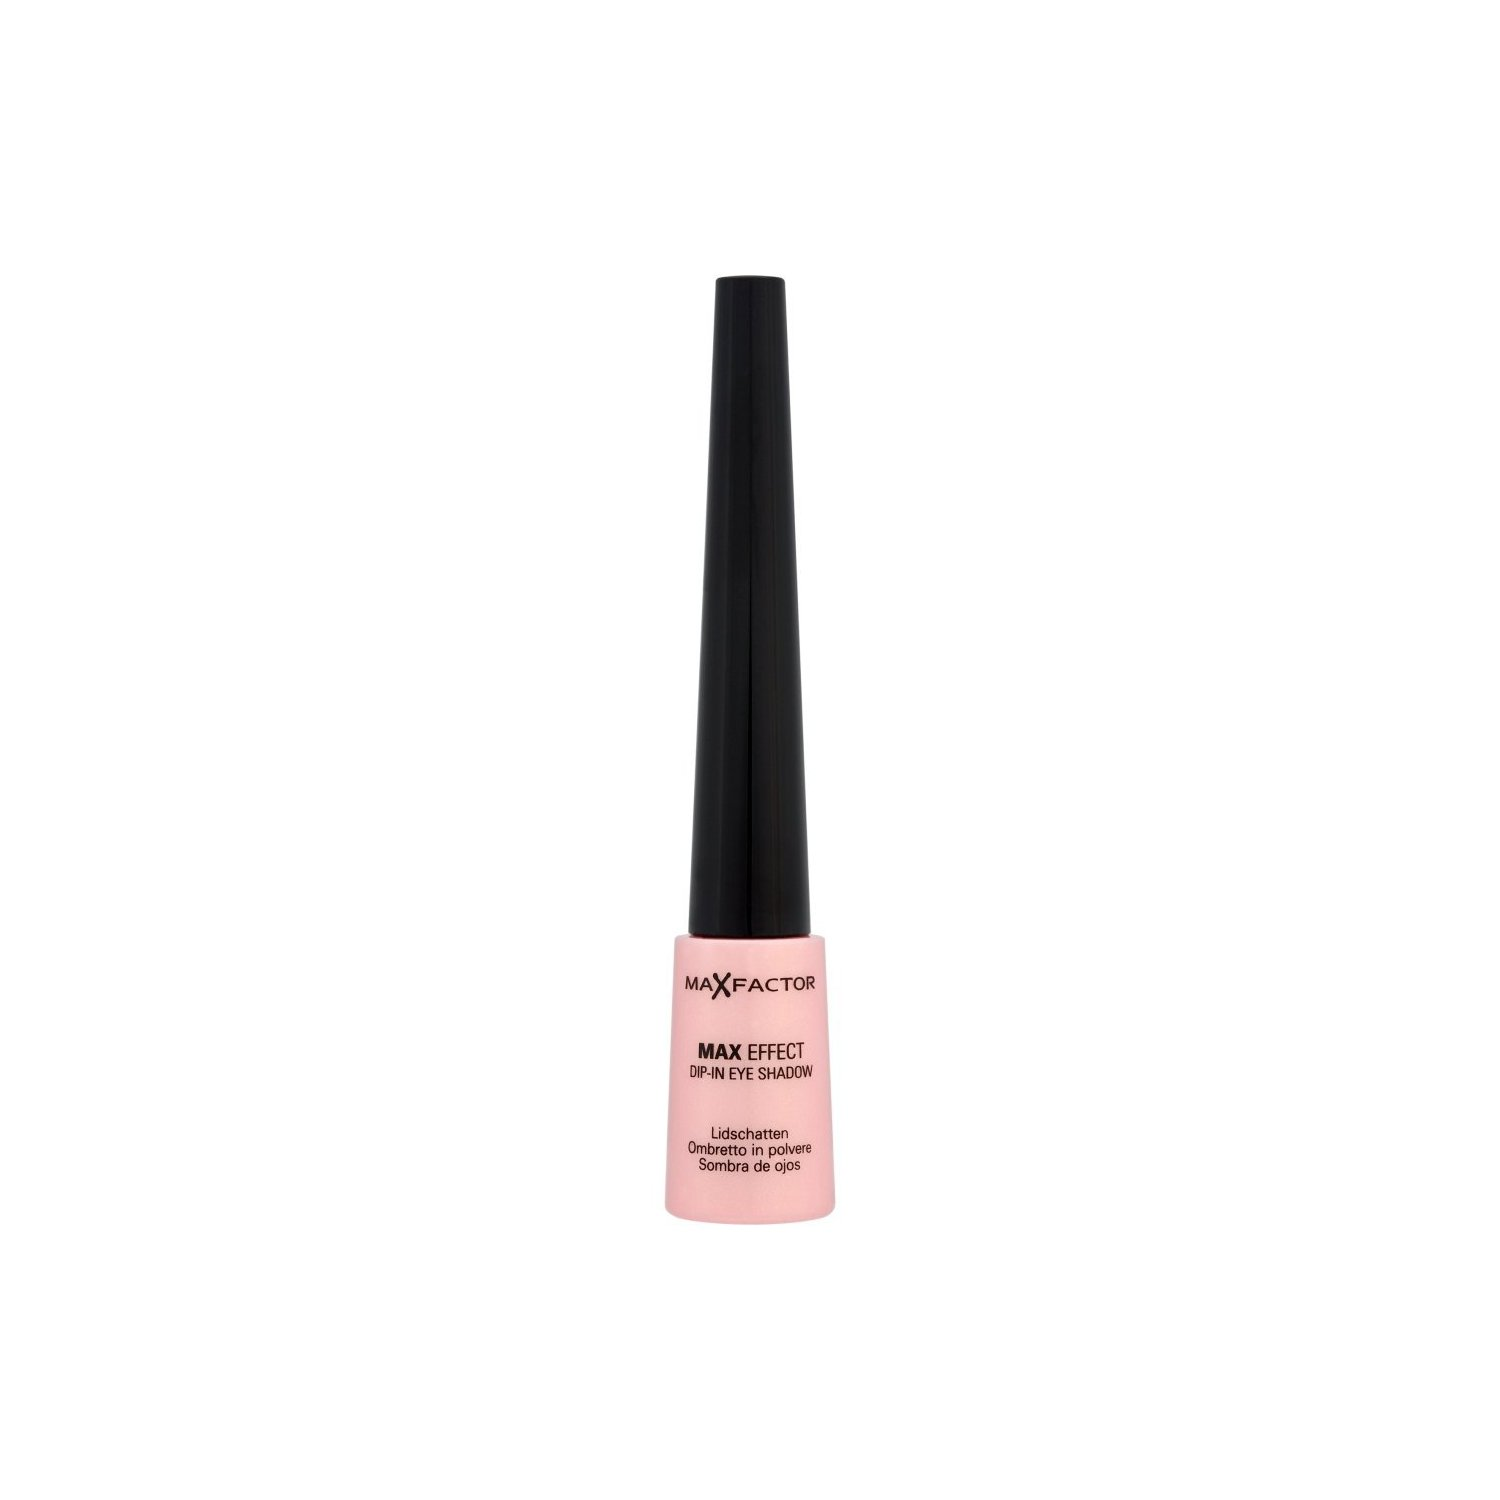 Max Factor Max Effect Dip-In-Eye Shadow Posh Pink 03